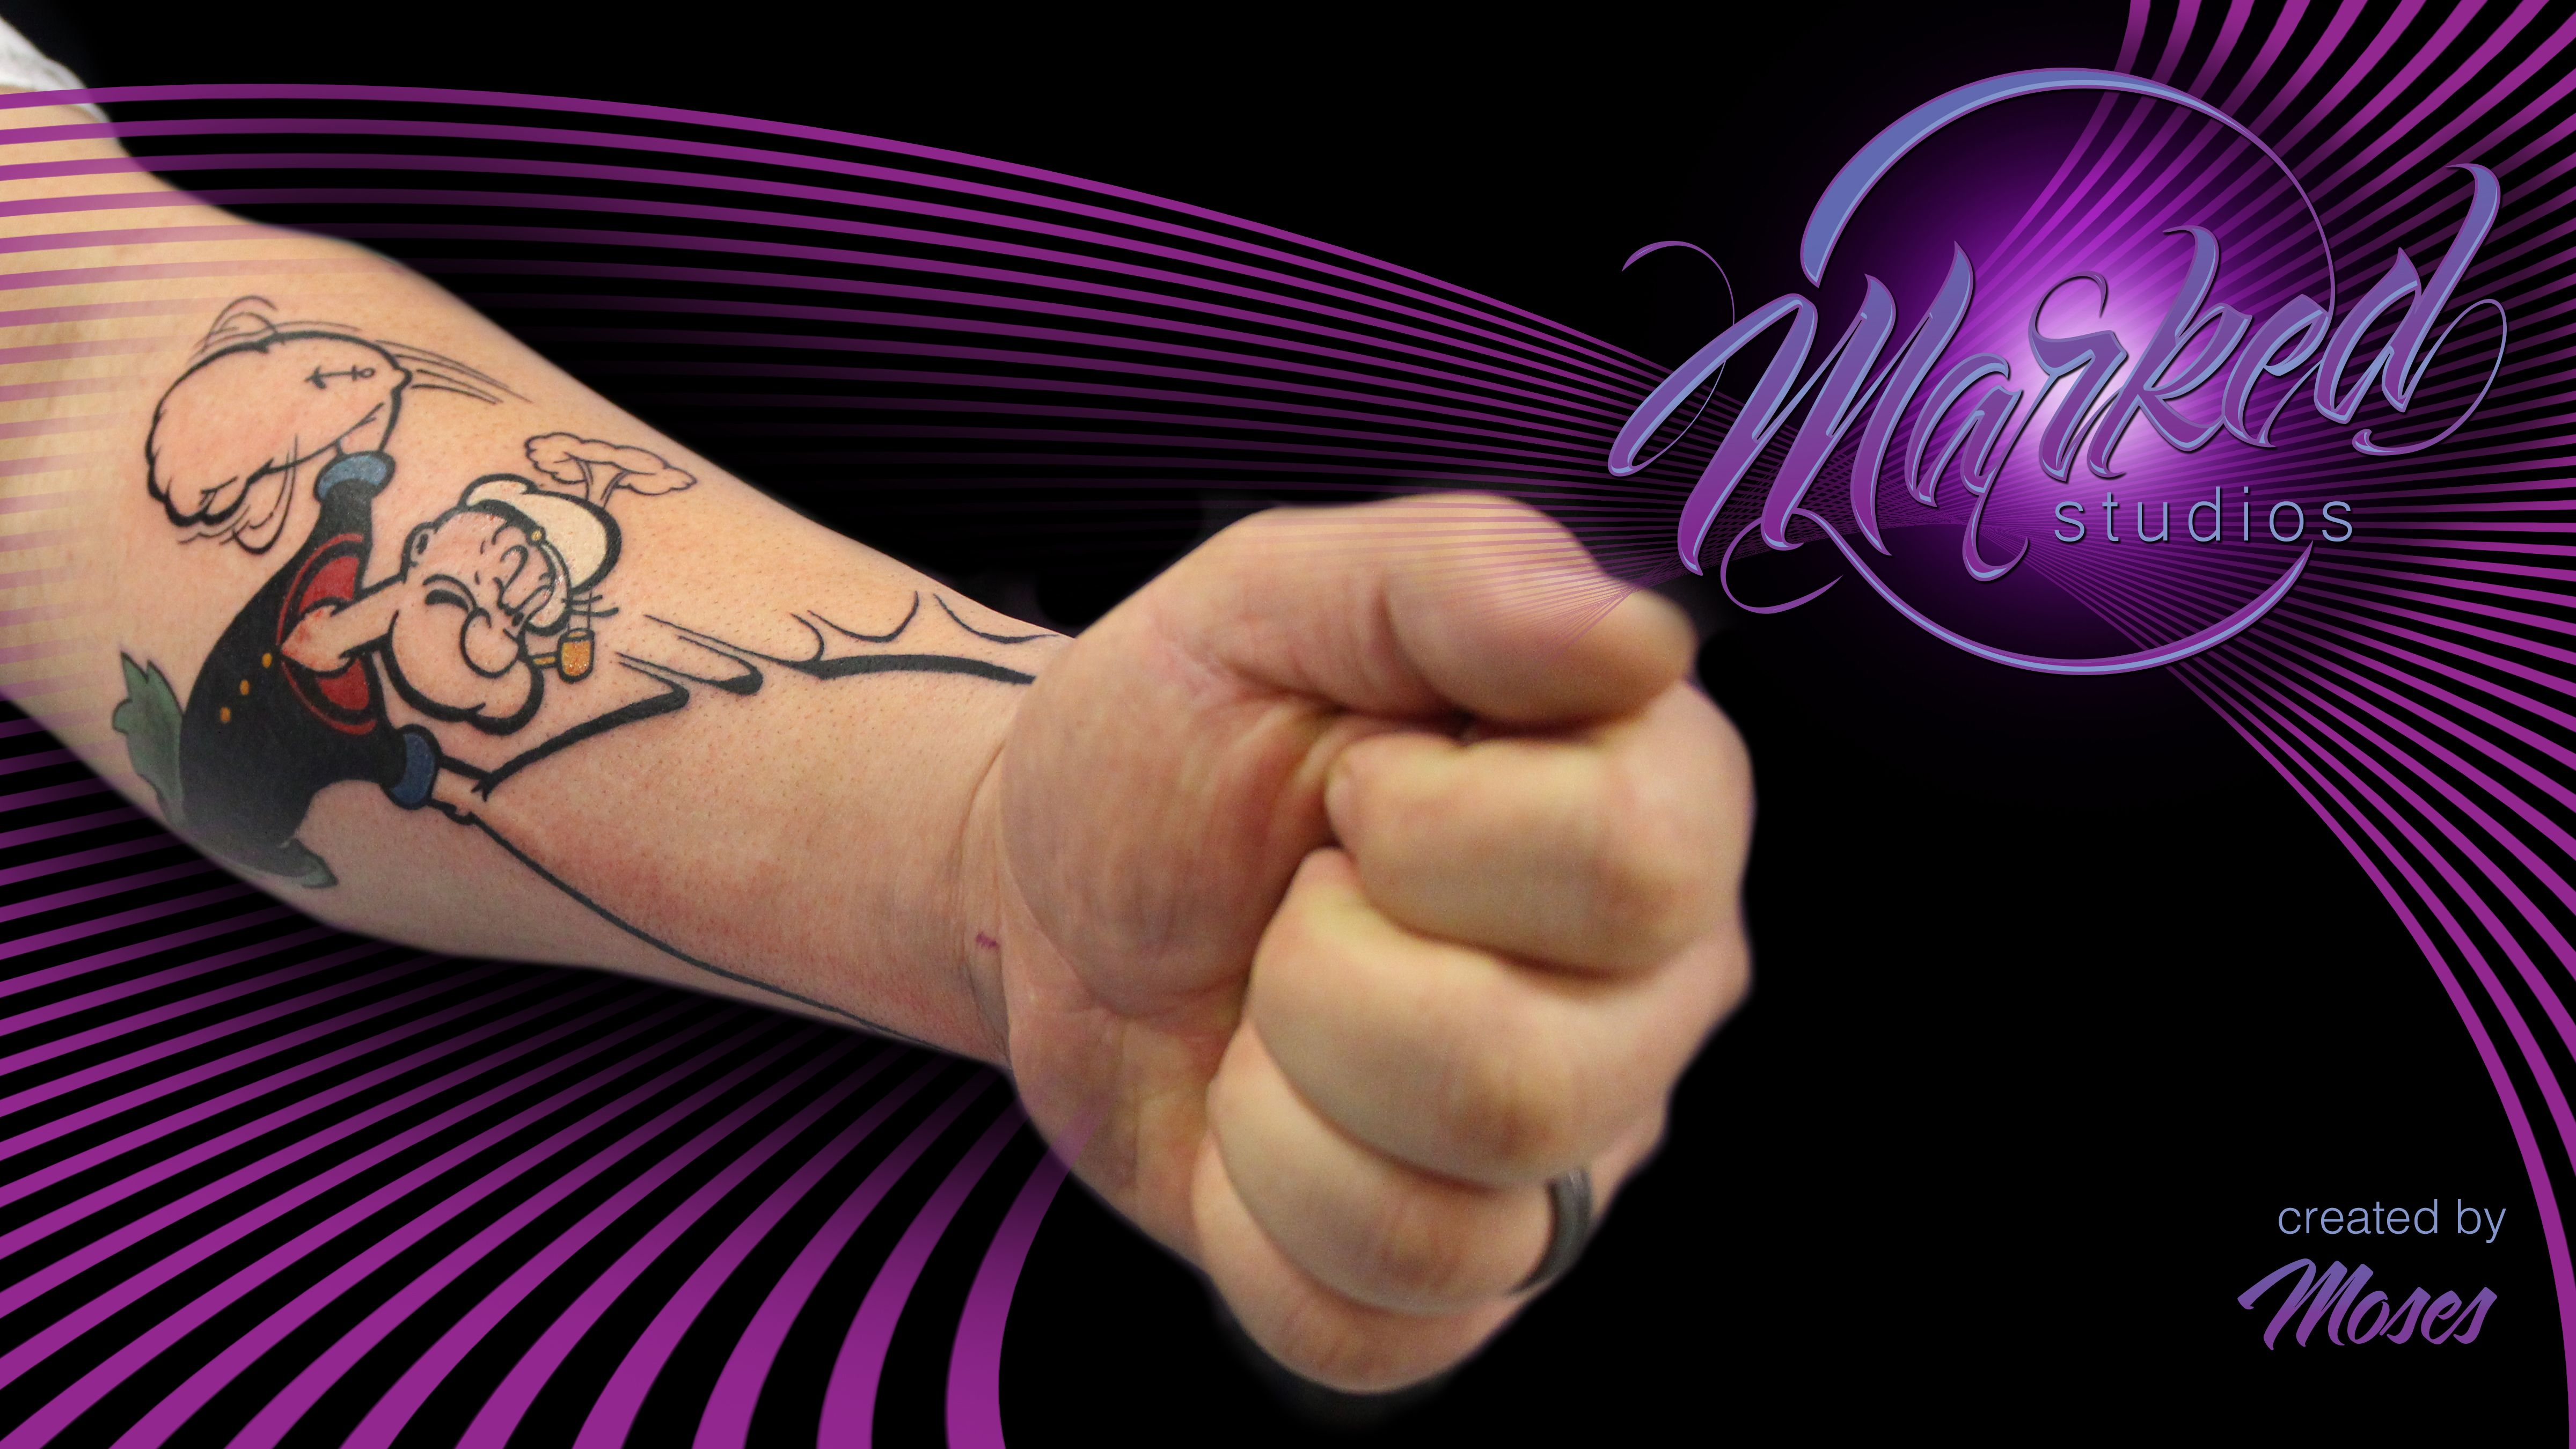 Popeye arm hand mash up forearm punch color tattoo artist for Ink flow tattoo